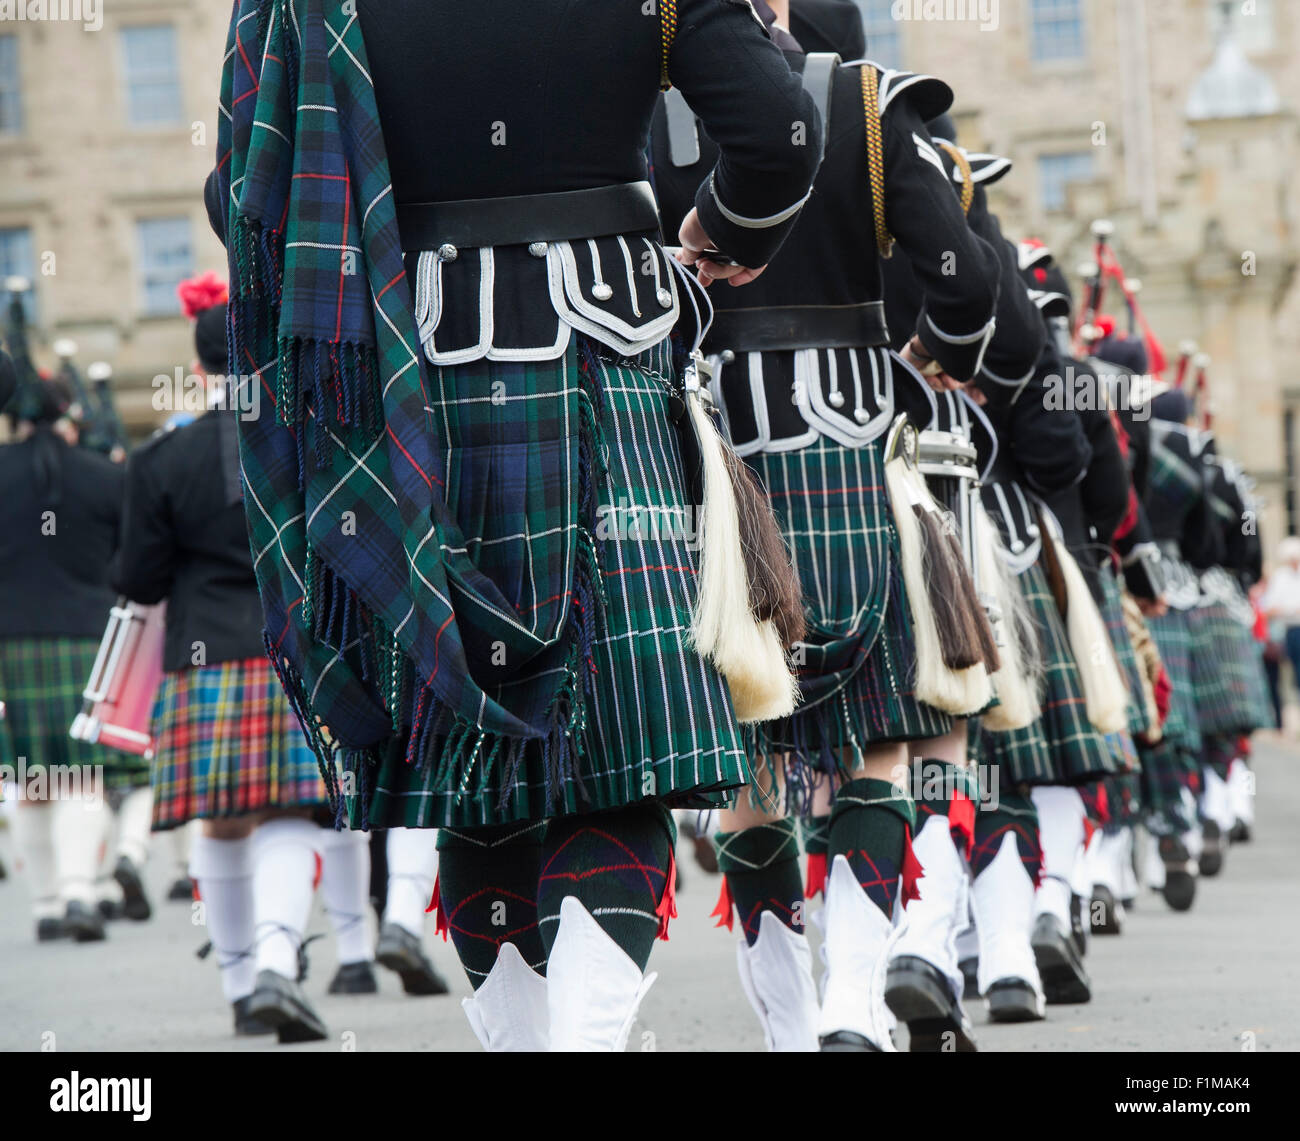 Massed Pipe bands at Floors castle. Kelso, Scotland - Stock Image